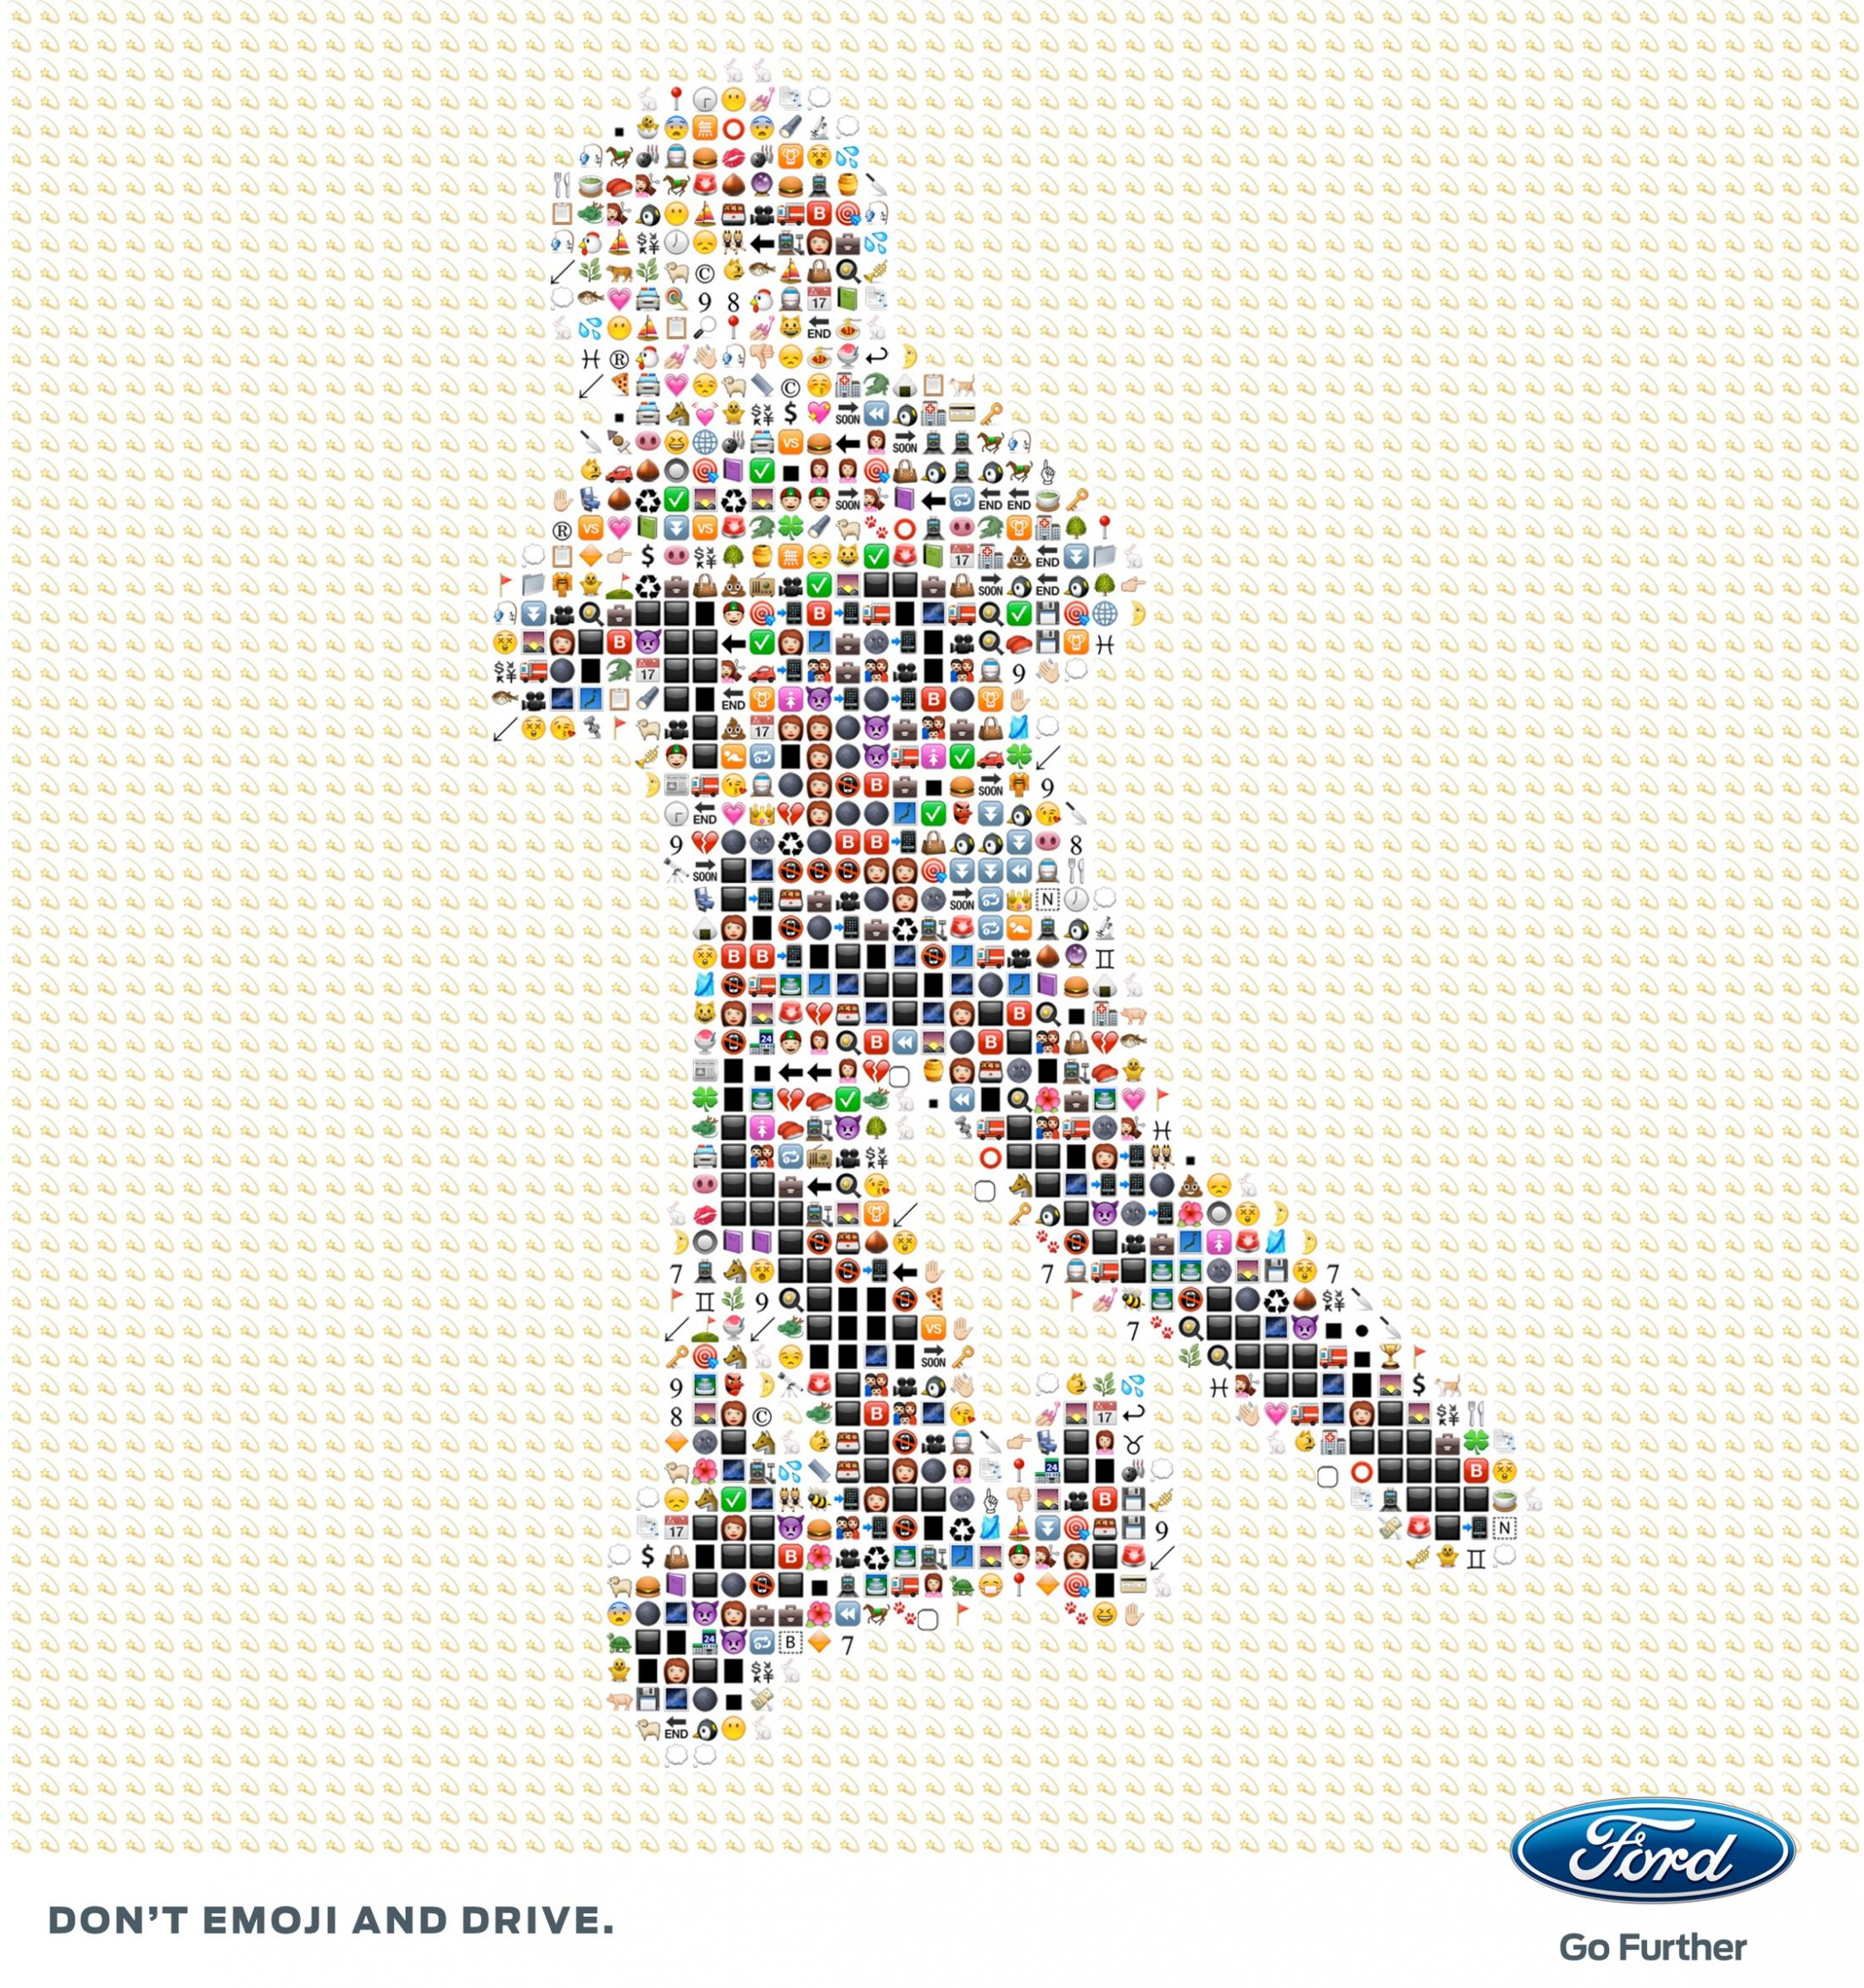 Ford Digital Ad -  #WorldEmojiDay, 3